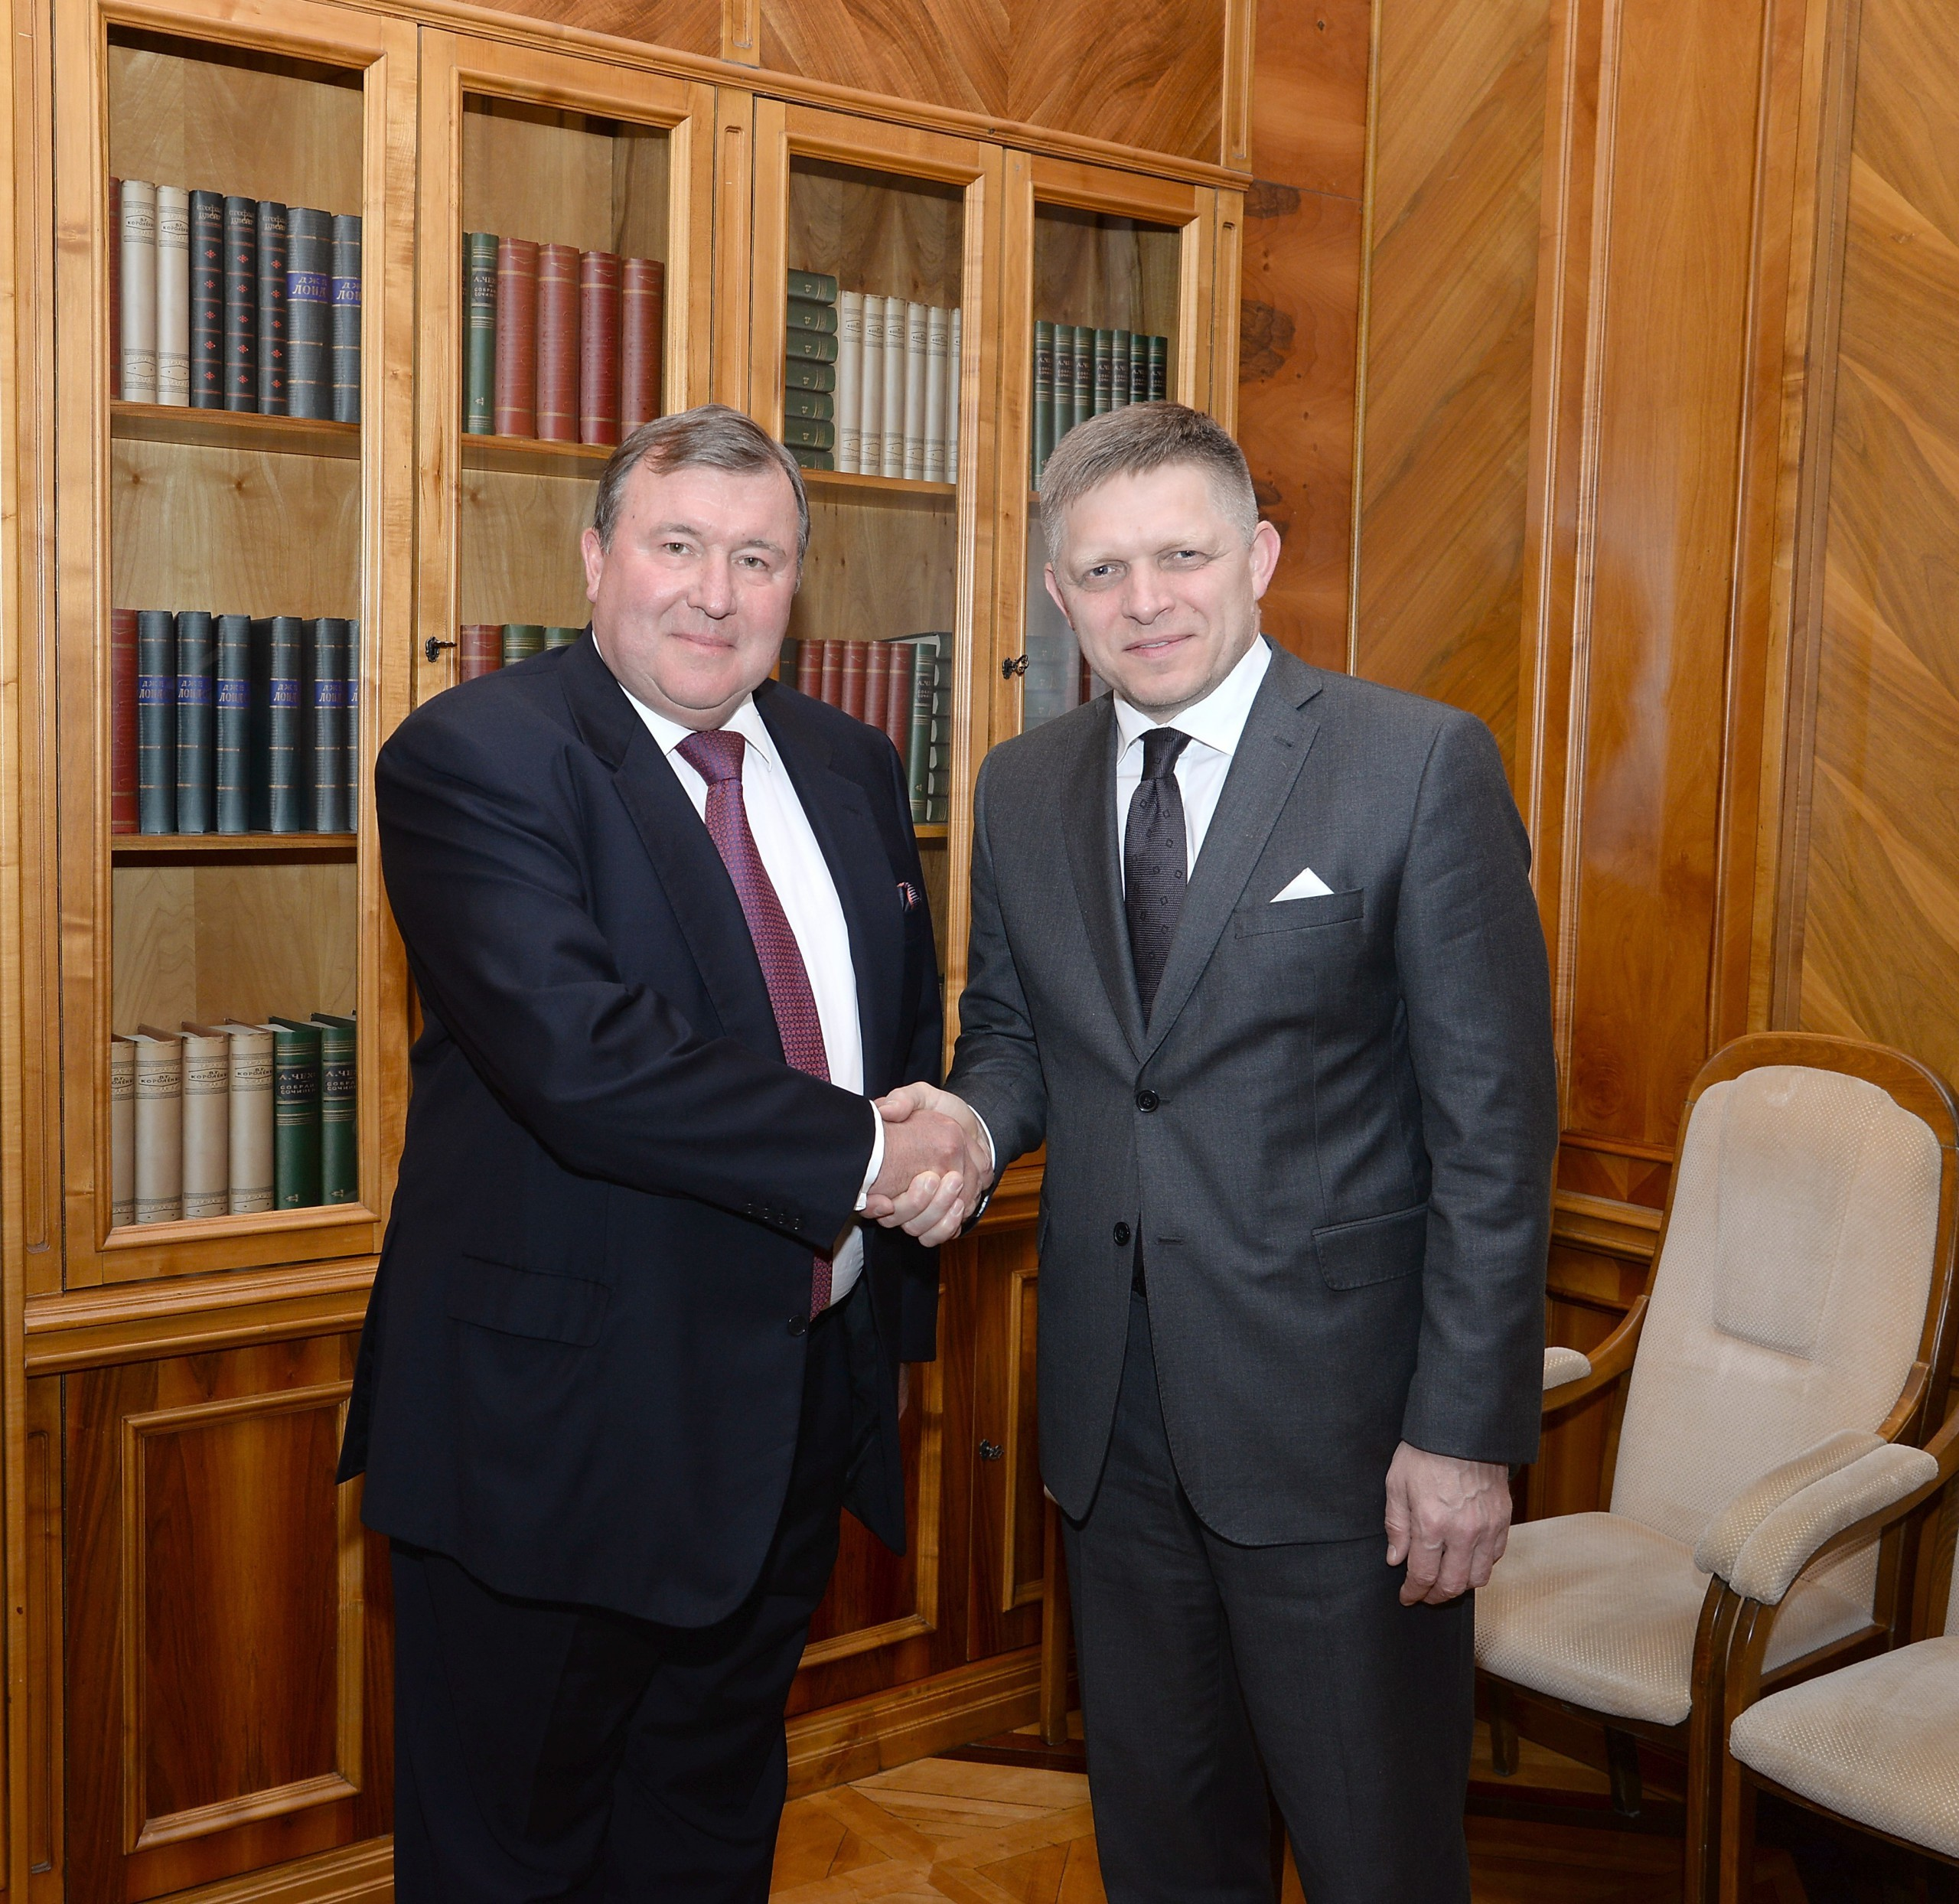 Slovak Prime Minister visited the IIB's headquarters for the Slovak-Russian and Russian-Slovak Business Councils' meetings and held negotiations with the Bank's management